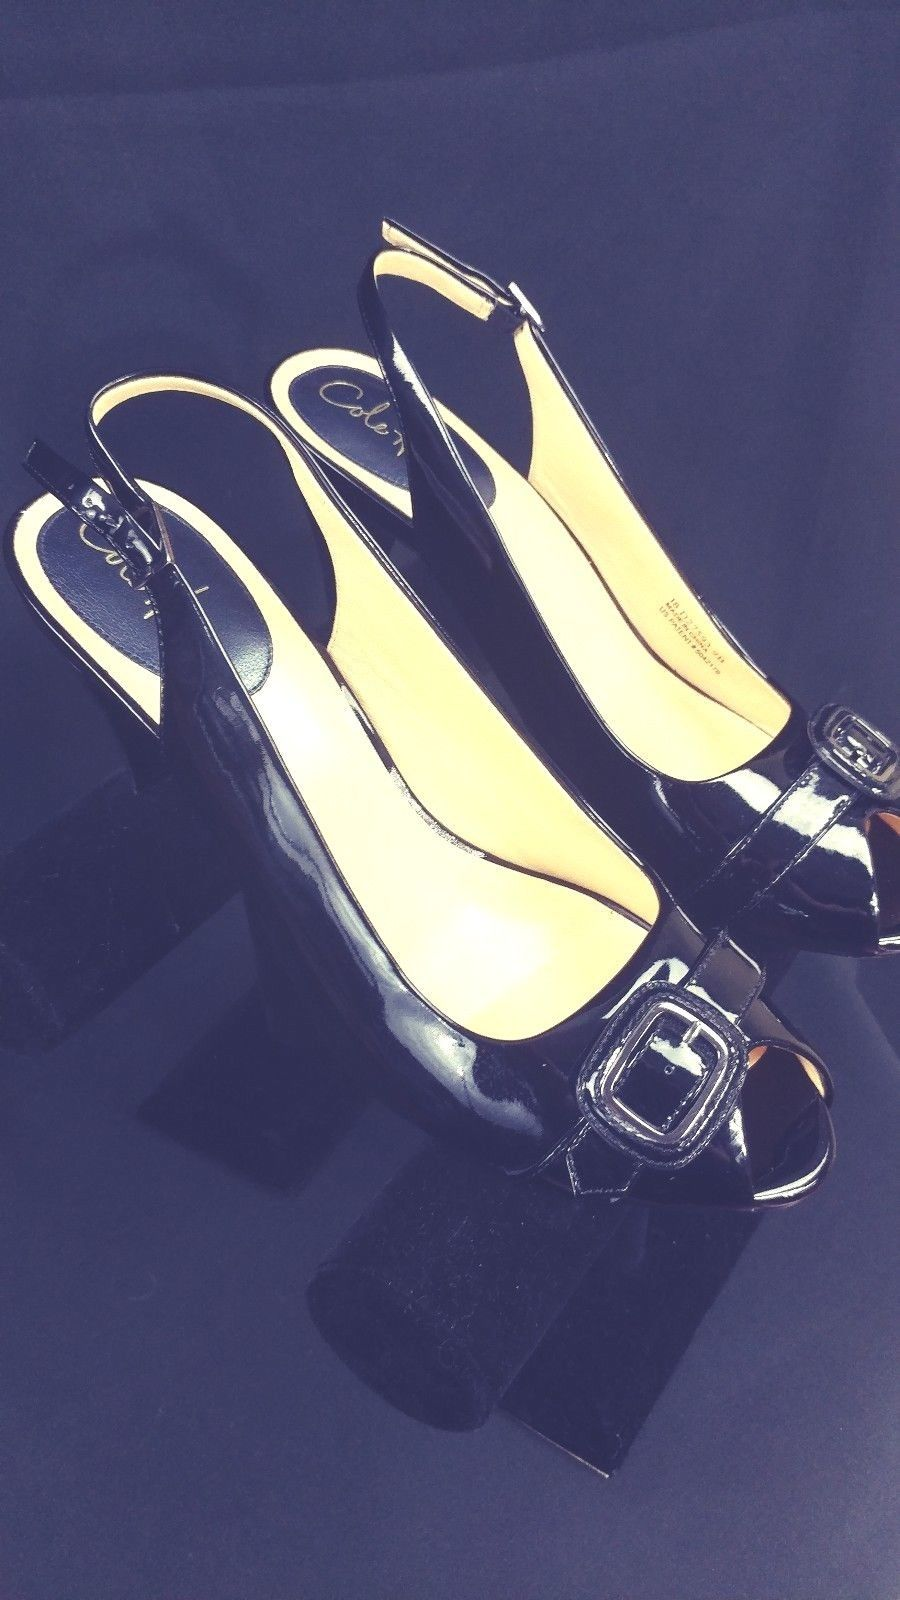 6f619fbafb0e S l1600. S l1600. Previous. Cole Haan Womens Peep Toe Slingback 3 inch Heels  Black Patent Leather ...